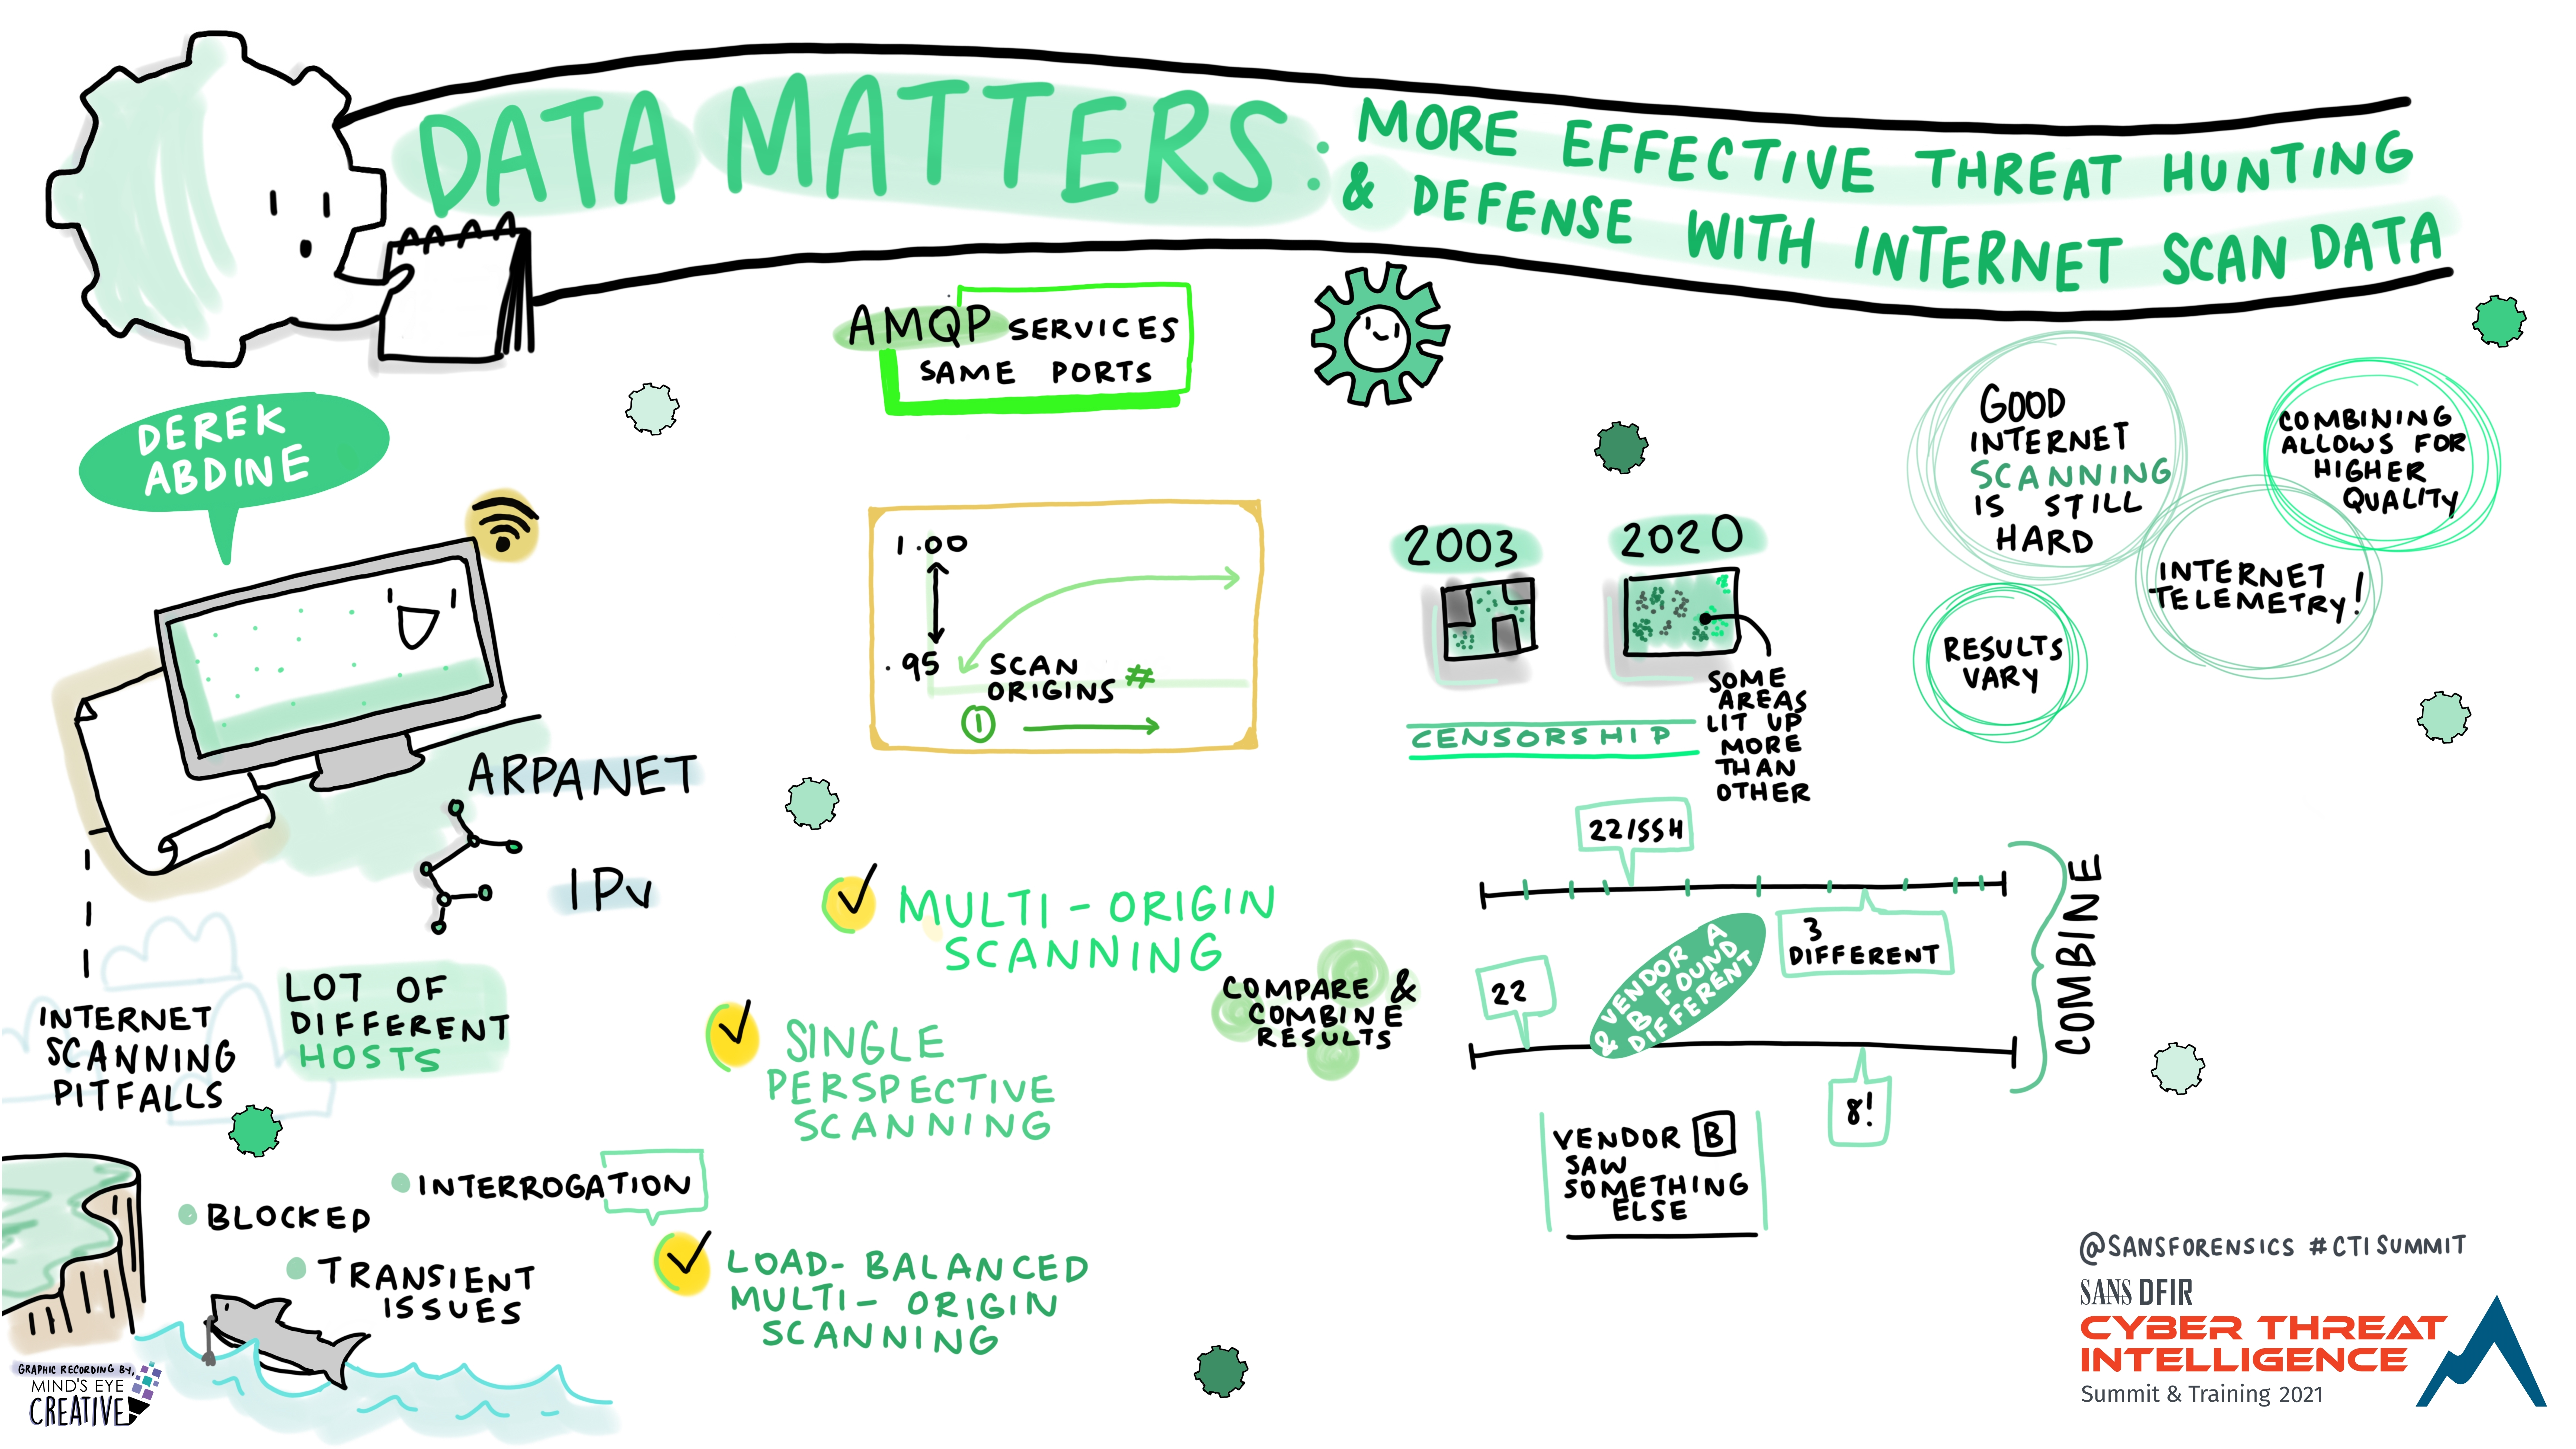 Data_Matters_-_More_Effective_Threat_Hunting_and_Defense_with_Internet_Scan_Data_Derek_Abdine_-_Graphic_Recording.jpg